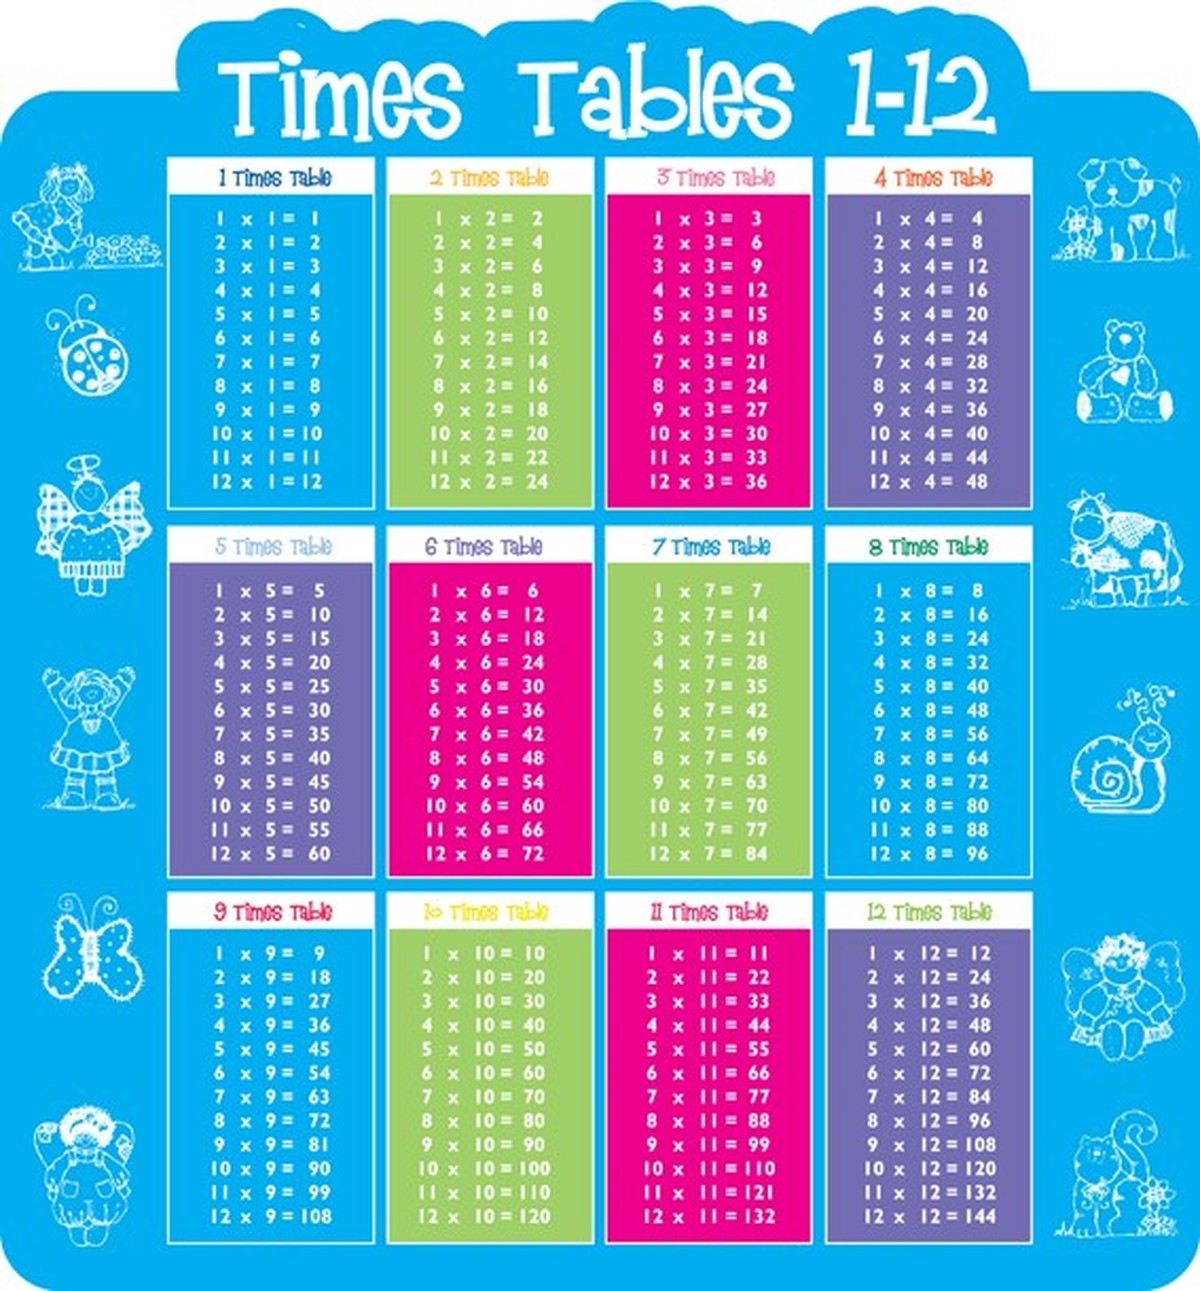 Multiplication games for 12 times tables 10 multiplication games designed to consolidate each - Teaching multiplication tables ...